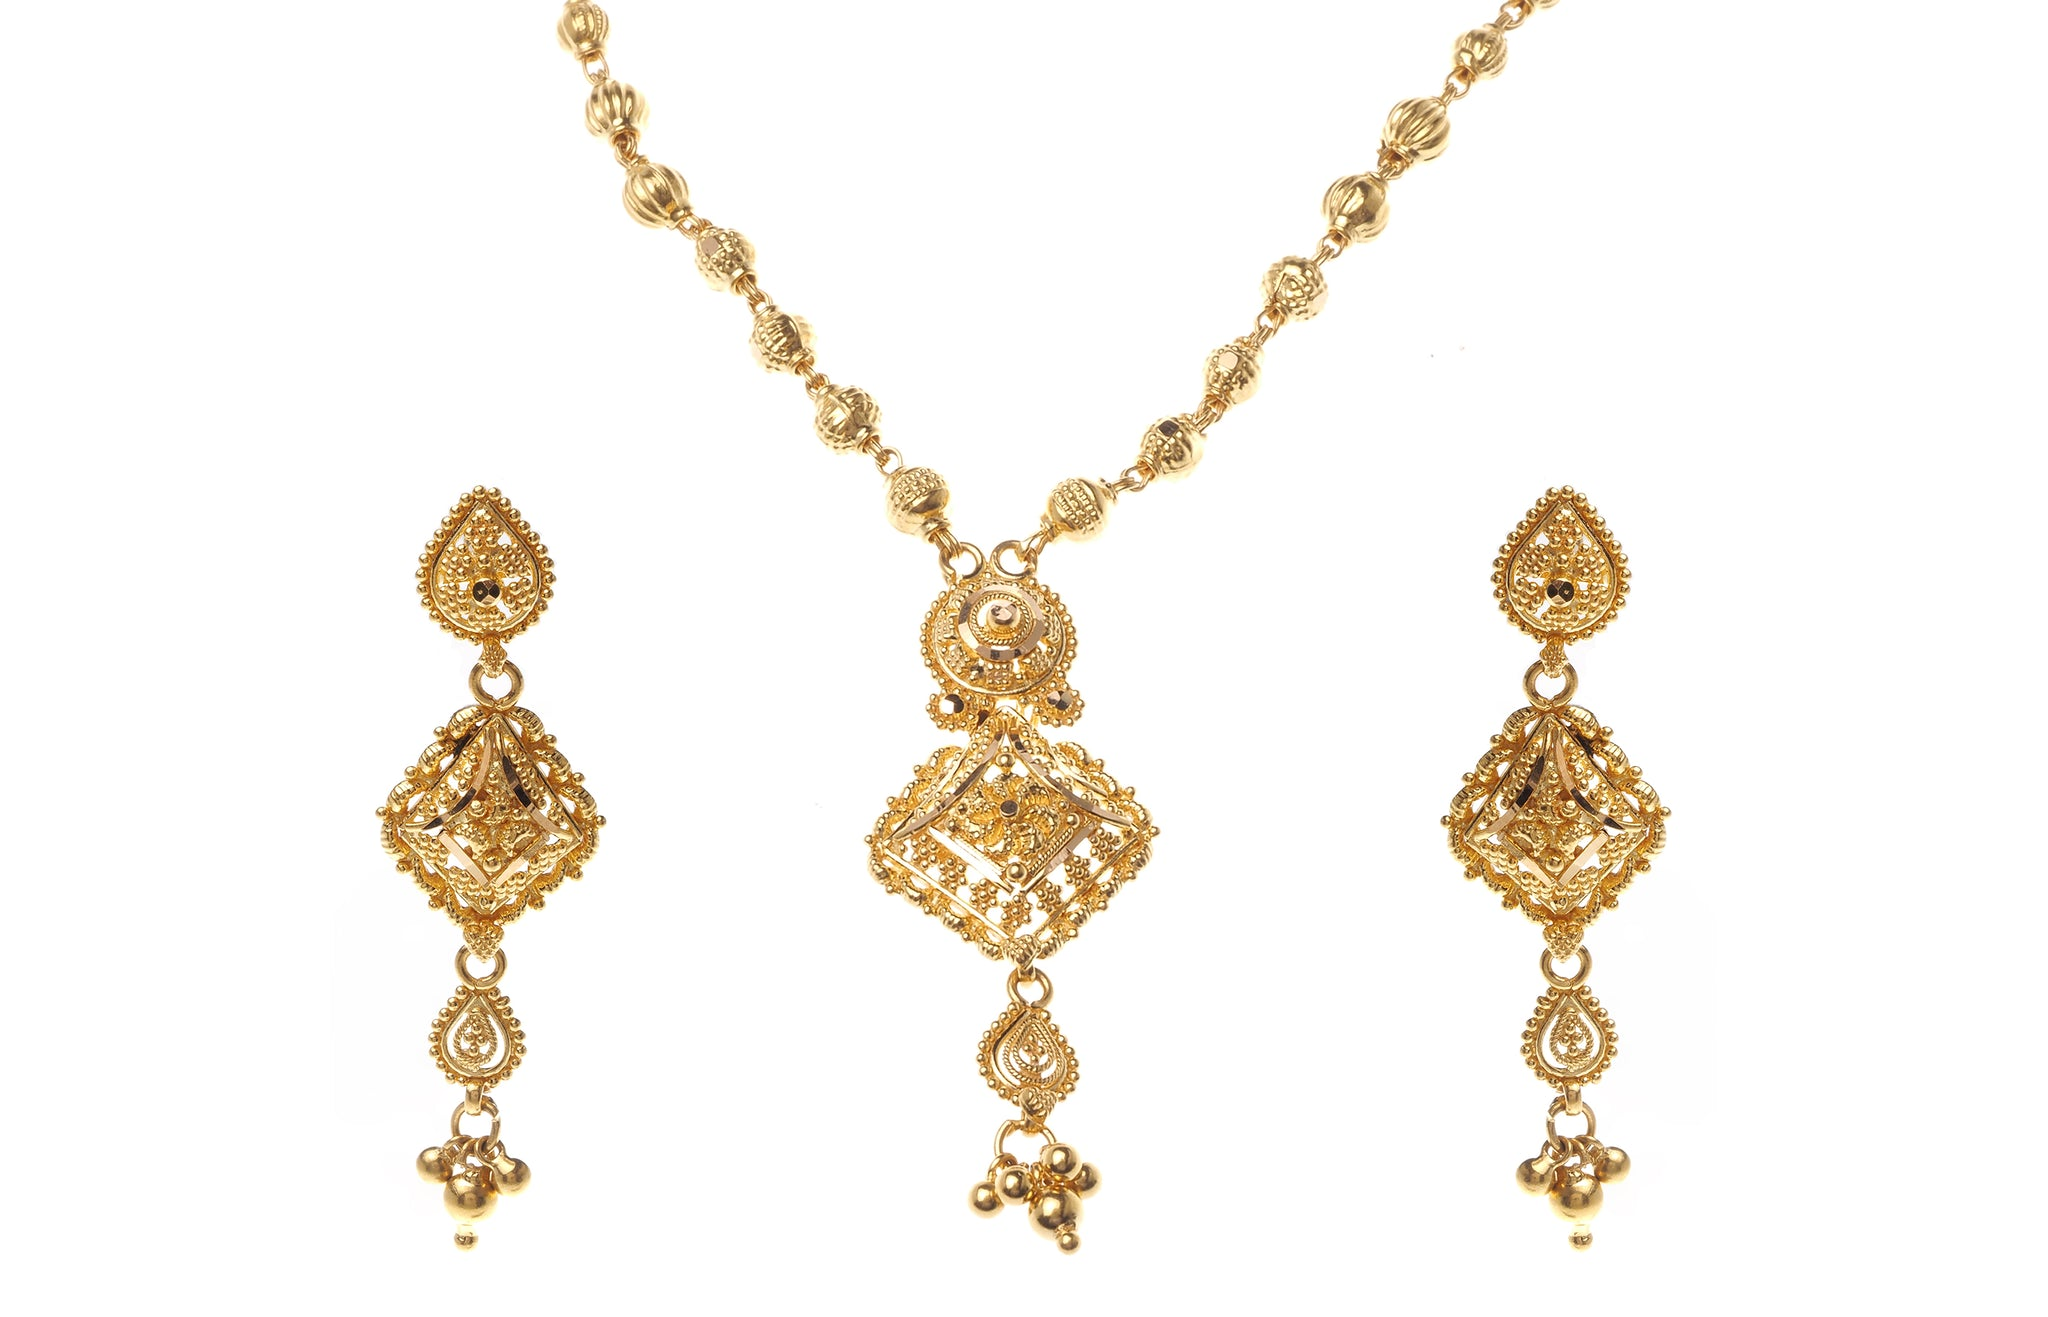 22ct Gold Necklace and Earrings Set (17.4g) N&E-6472